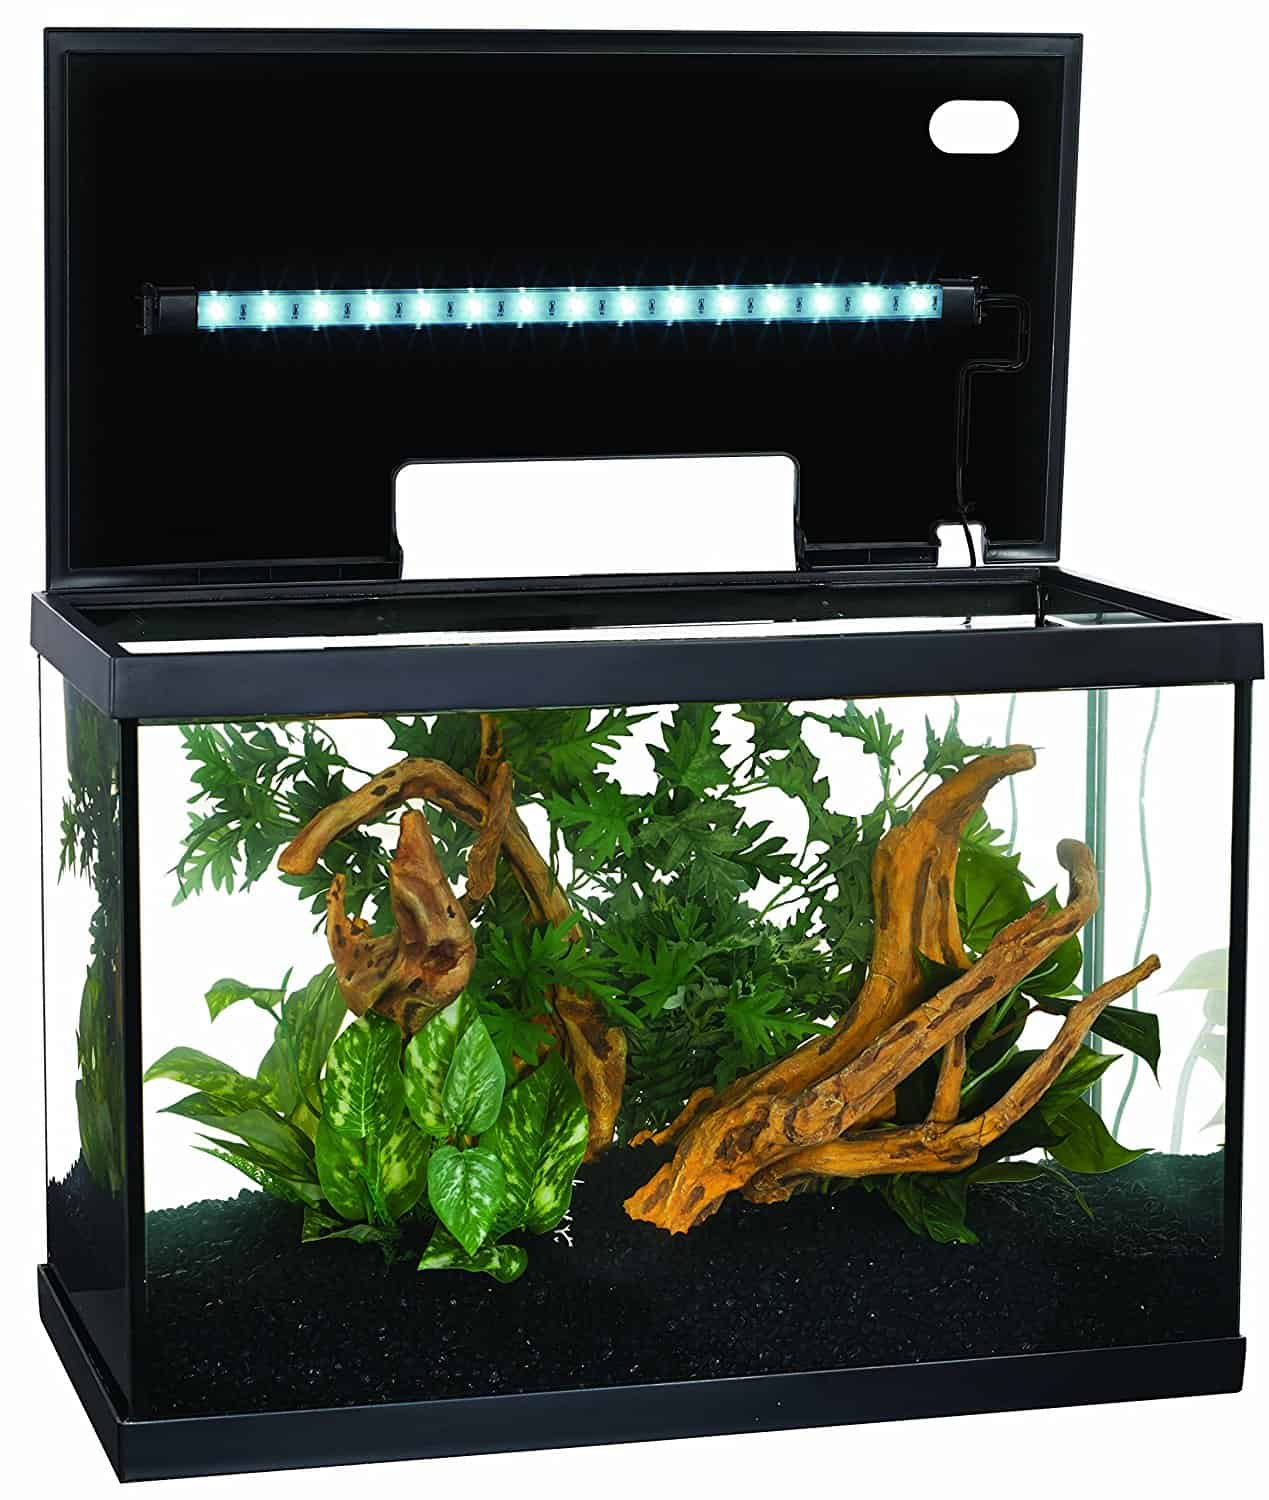 Marina-10-Gallon-Aquarium-Kit - Aquariums at Home 10 Gallon Home Aquariums